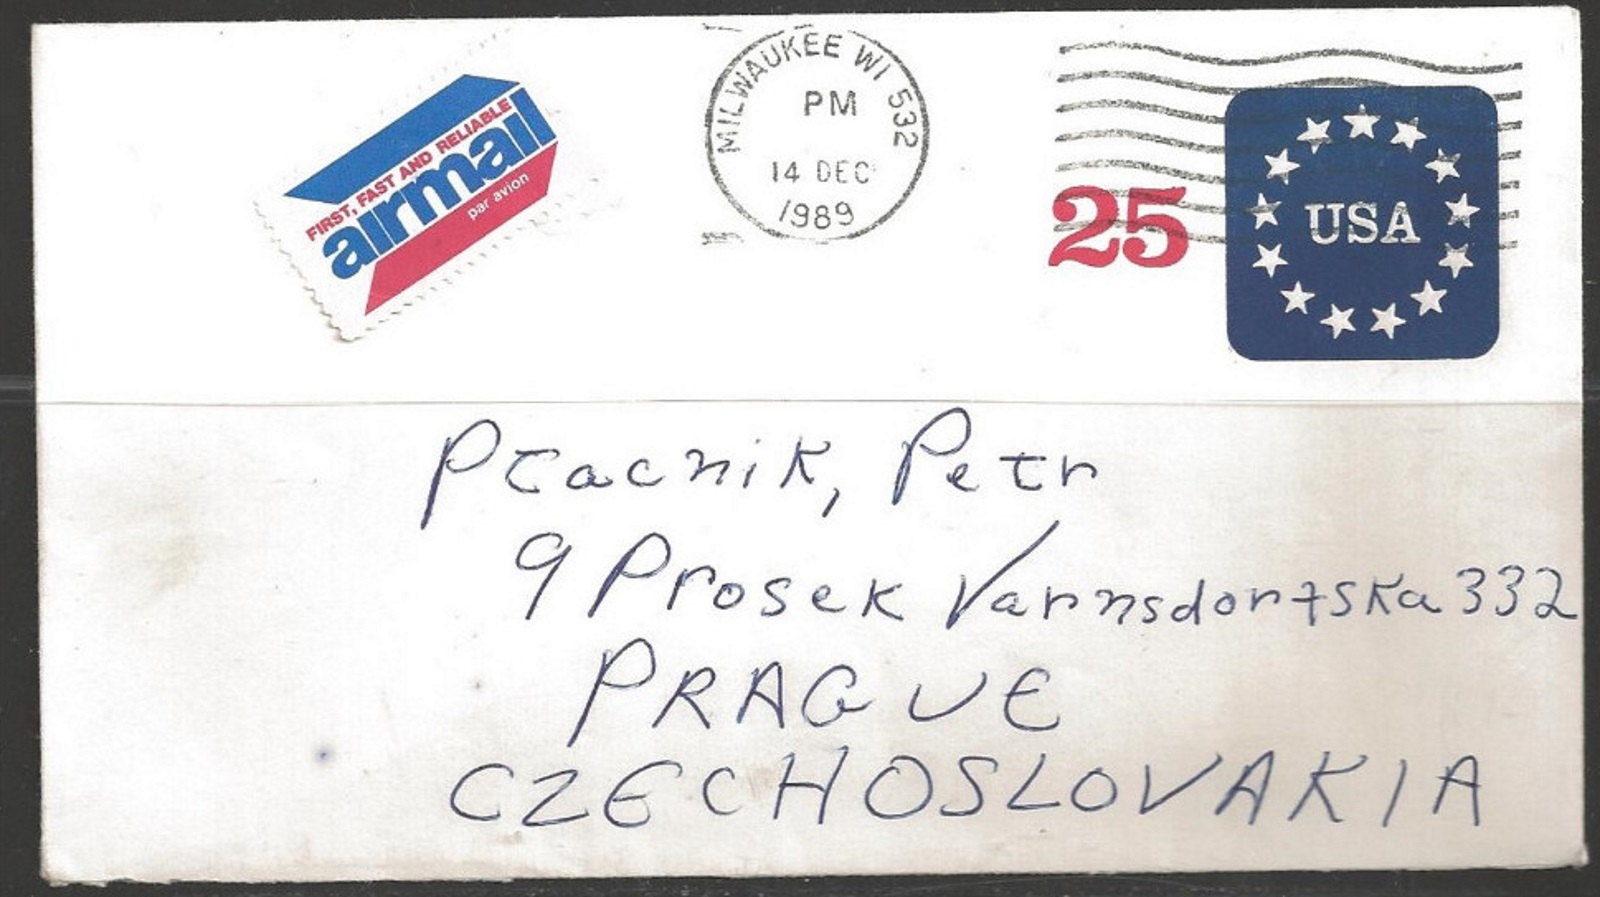 1989 25 cents USPS envelope mailed to Czechoslovakia without postage due